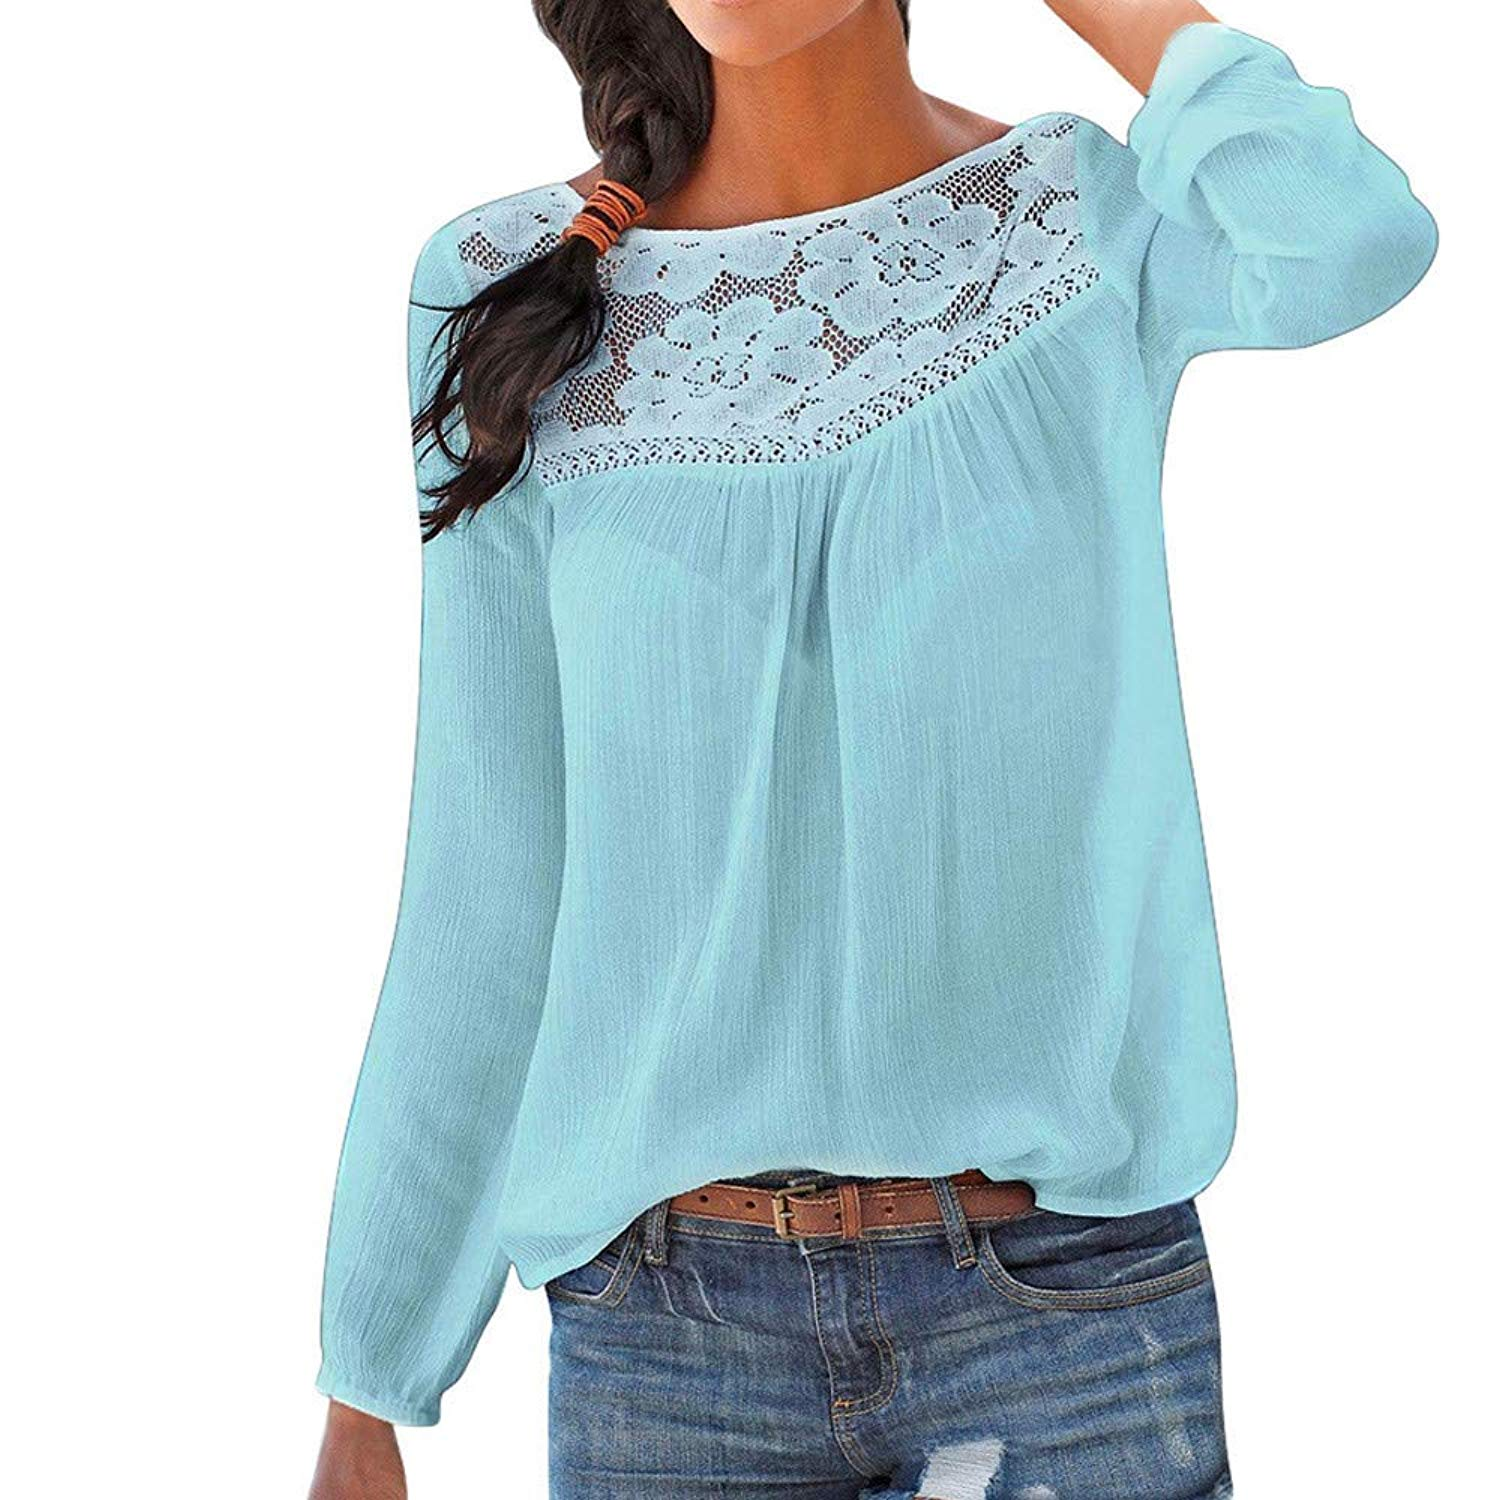 Clearance!Dressin_Women's Casual Long Sleeve Lace Patchwork Tops Blouse